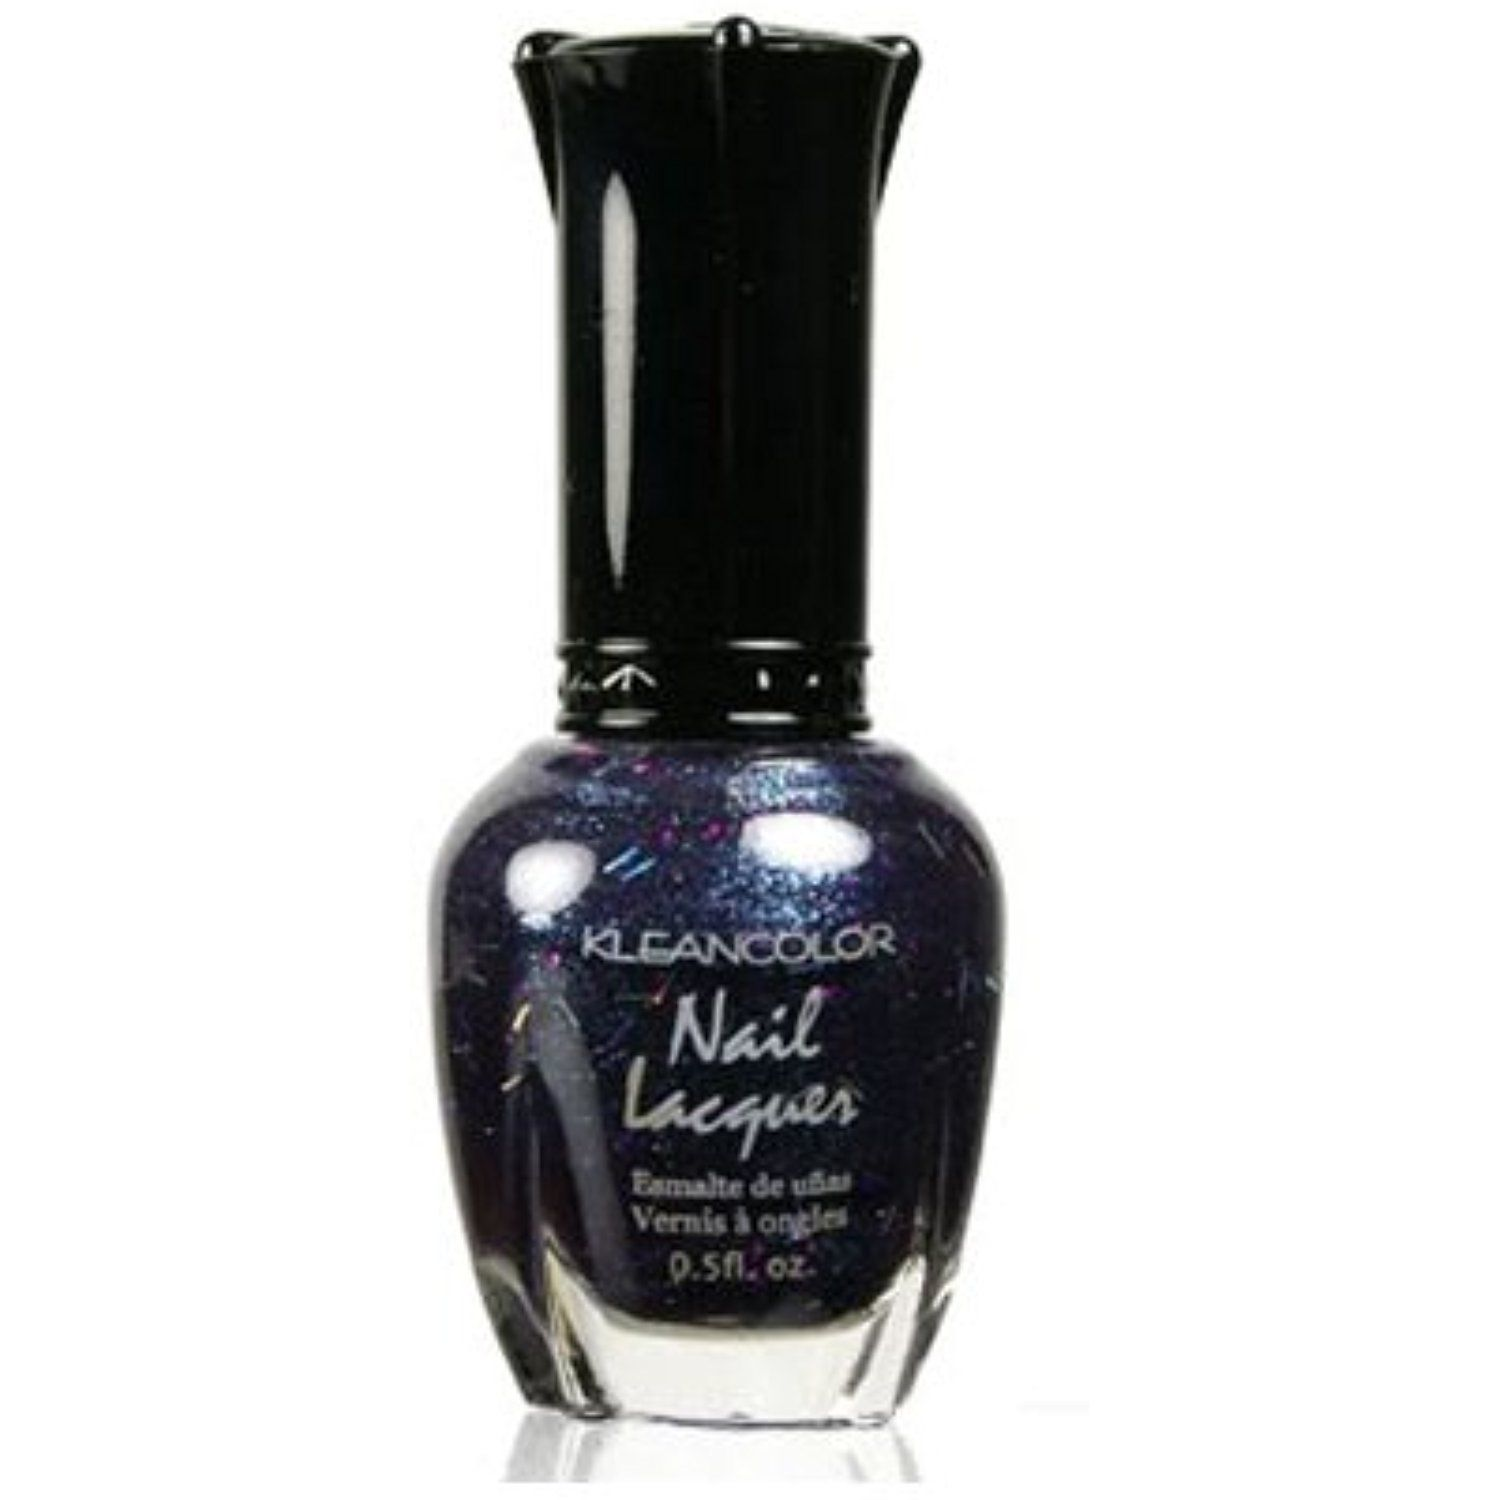 1 Kleancolor Nail Polish Lacquer #FootHandNailCare | Foot, Hand ...